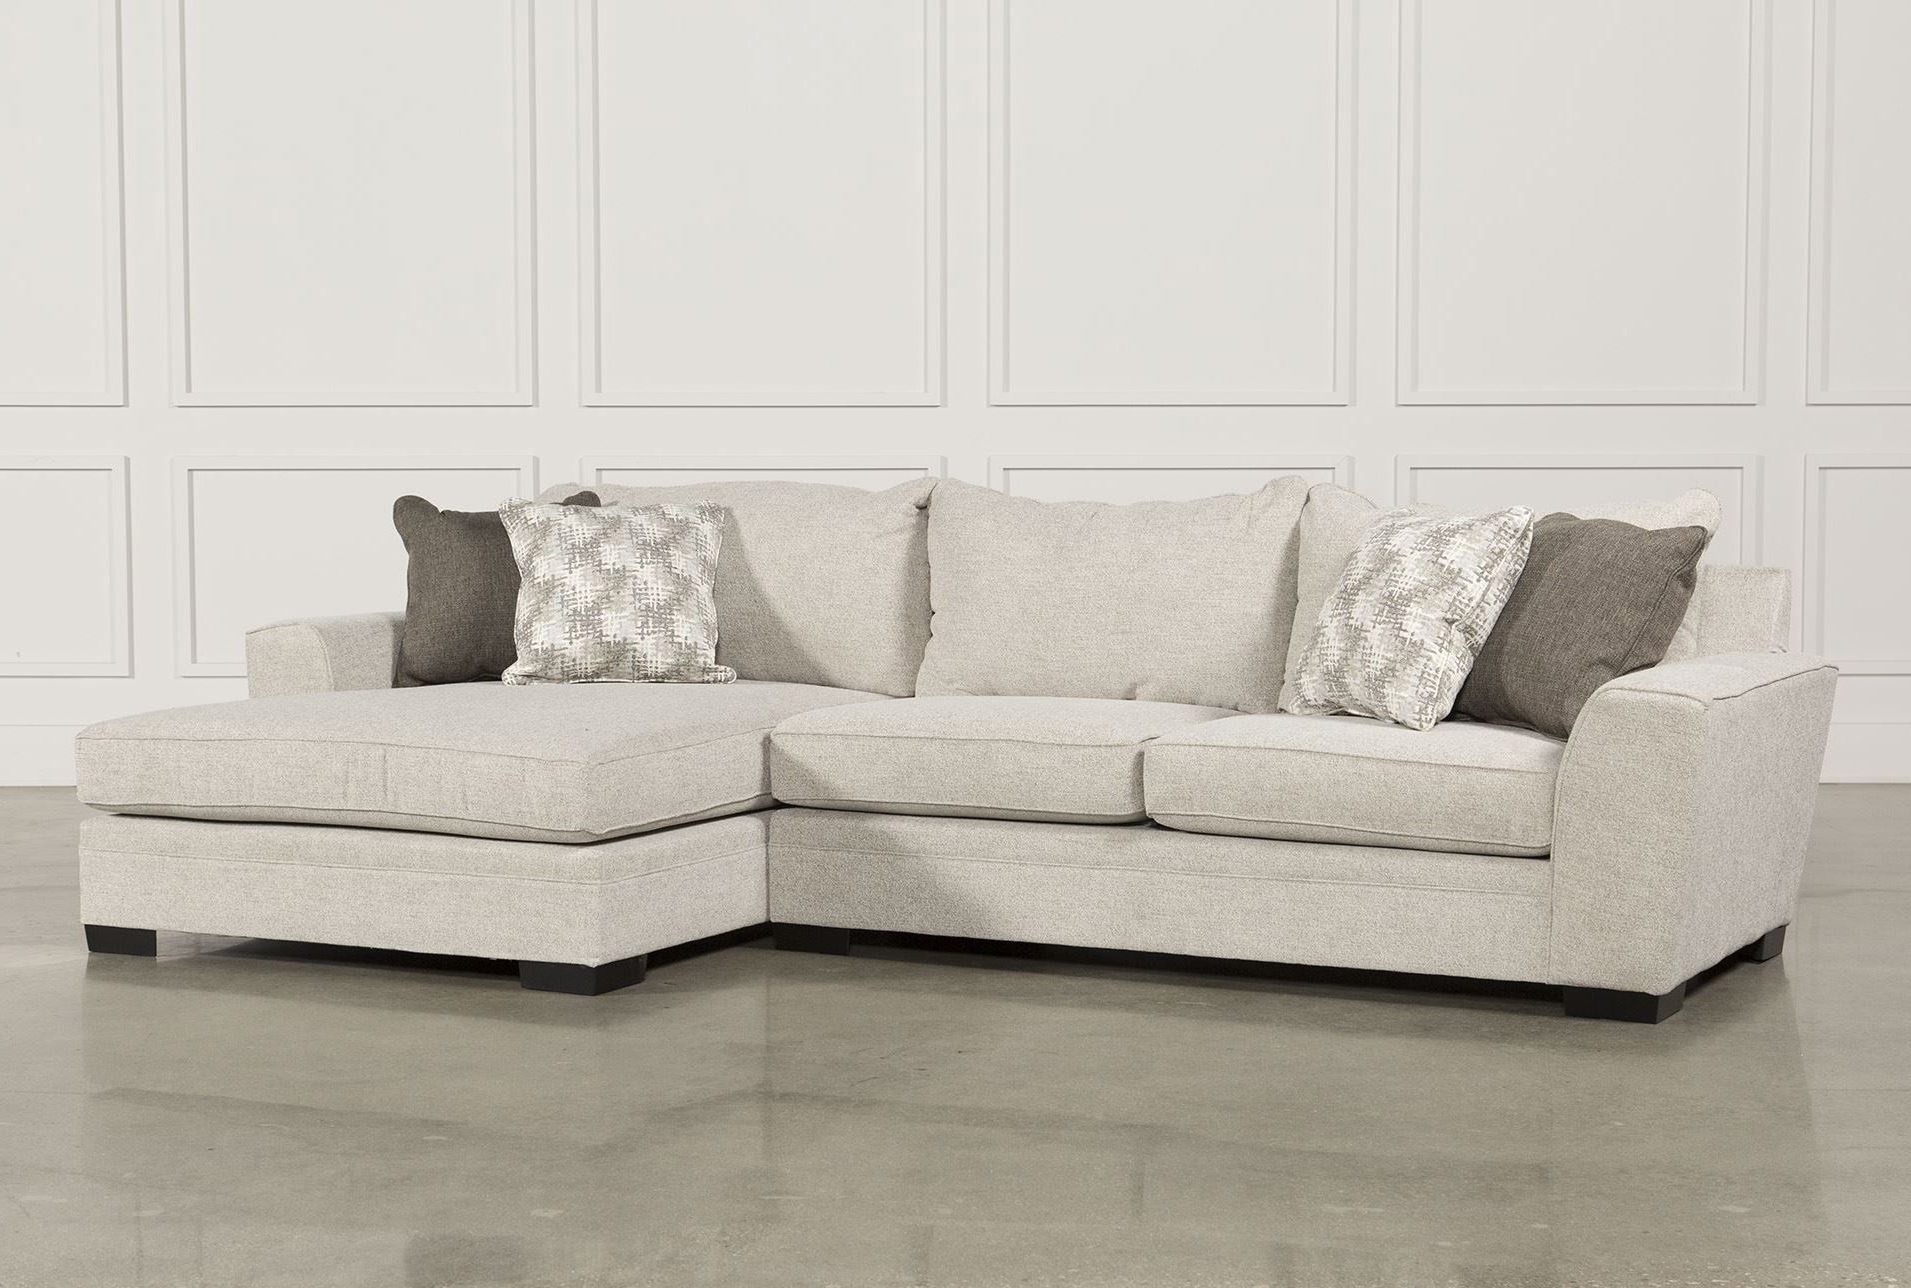 New Home For Latest Delano 2 Piece Sectionals With Laf Oversized Chaise (View 15 of 20)